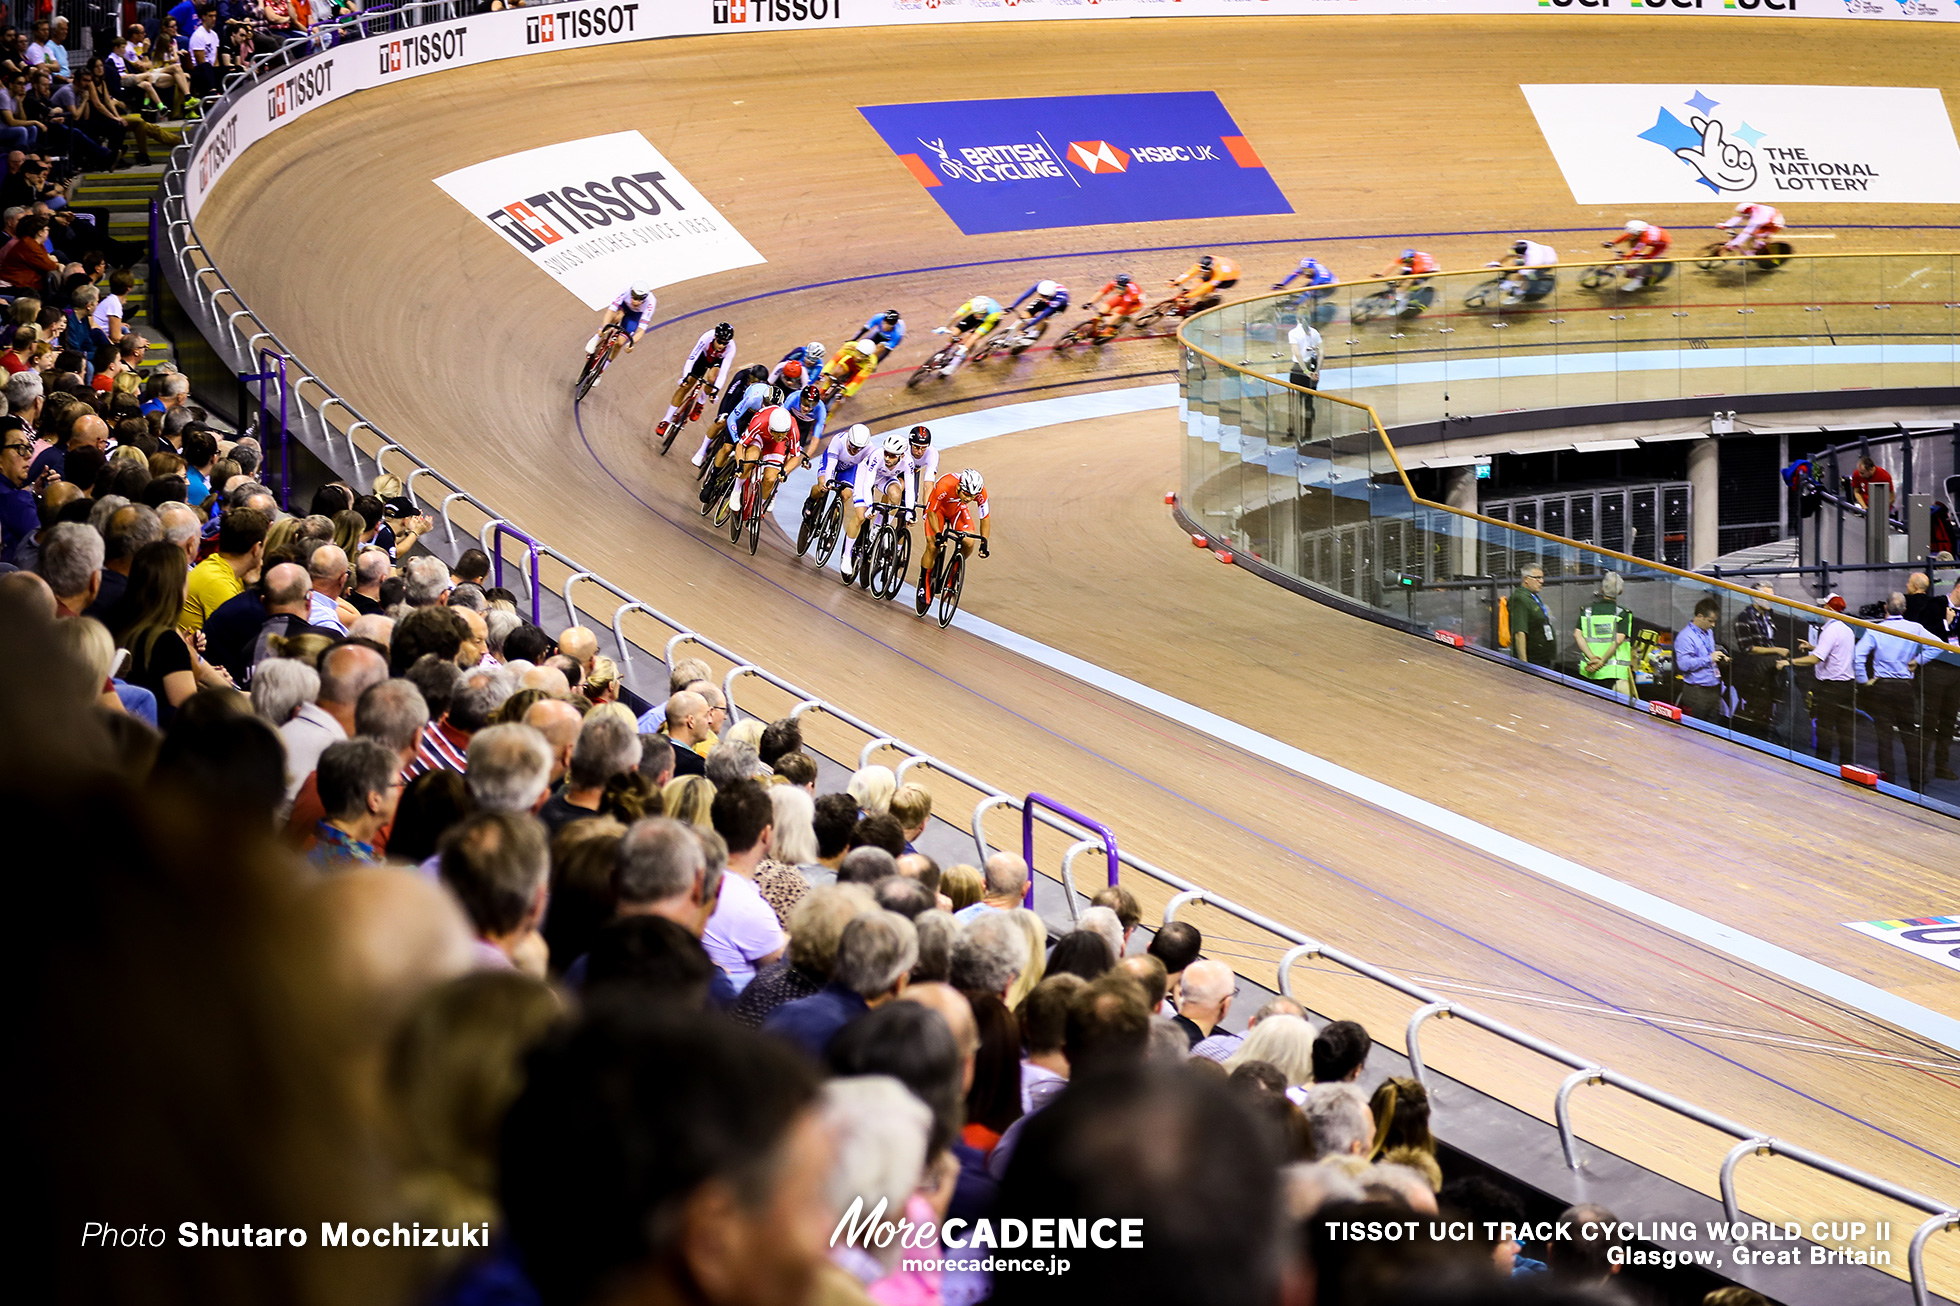 Point Race / Men's Omnium / TISSOT UCI TRACK CYCLING WORLD CUP II, Glasgow, Great Britain